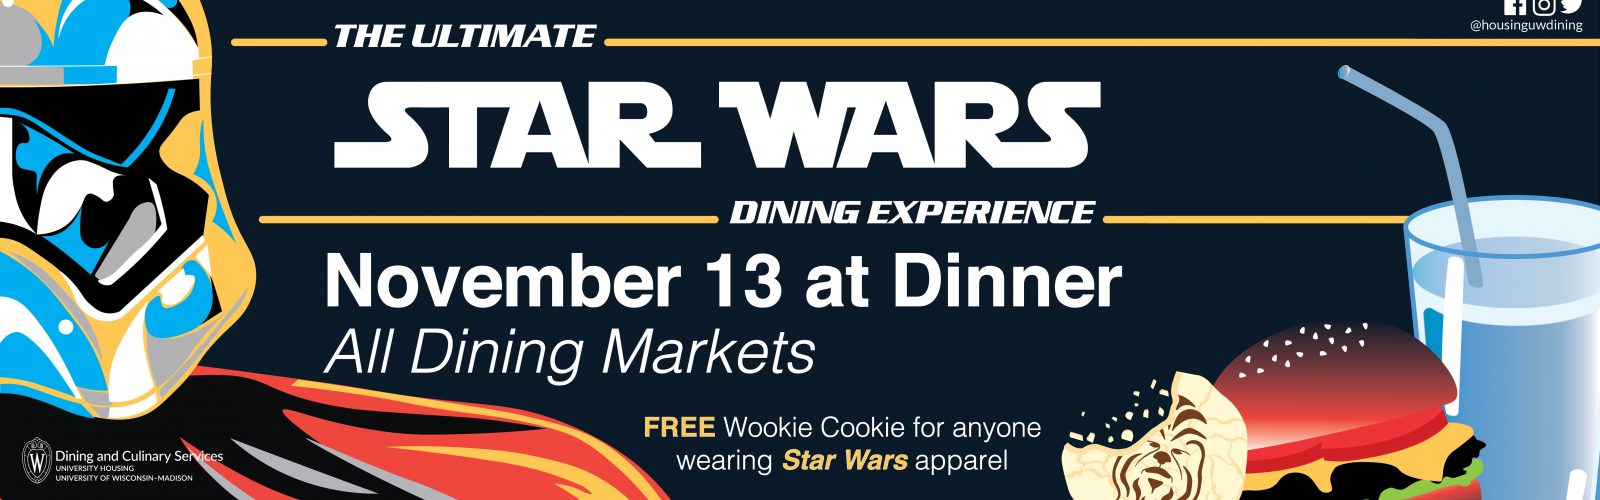 The Ultimate Star Wars Dining Experience, November 13 at Dinner at all Dining Markets. Anyone wearing Star Wars apparel gets a free wookie cookie.